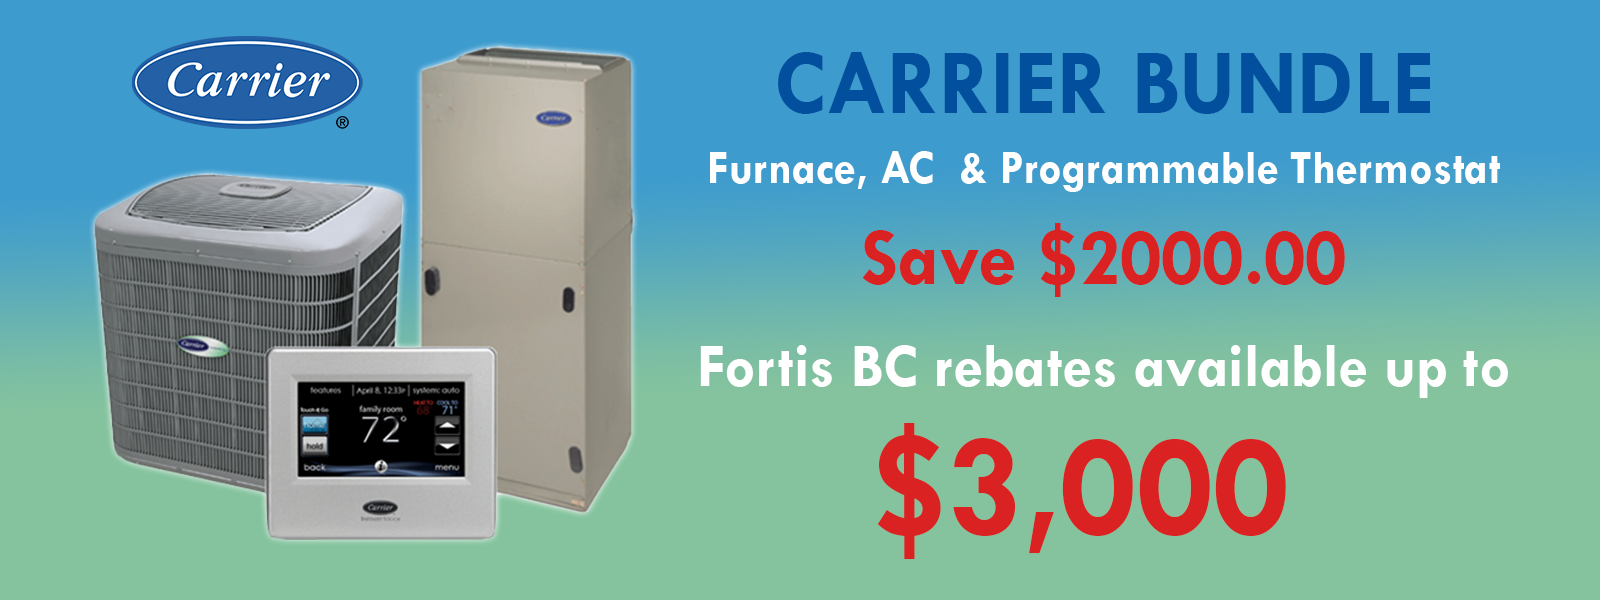 RECEIVE UP TO $3,000 Rebate from FortisBC